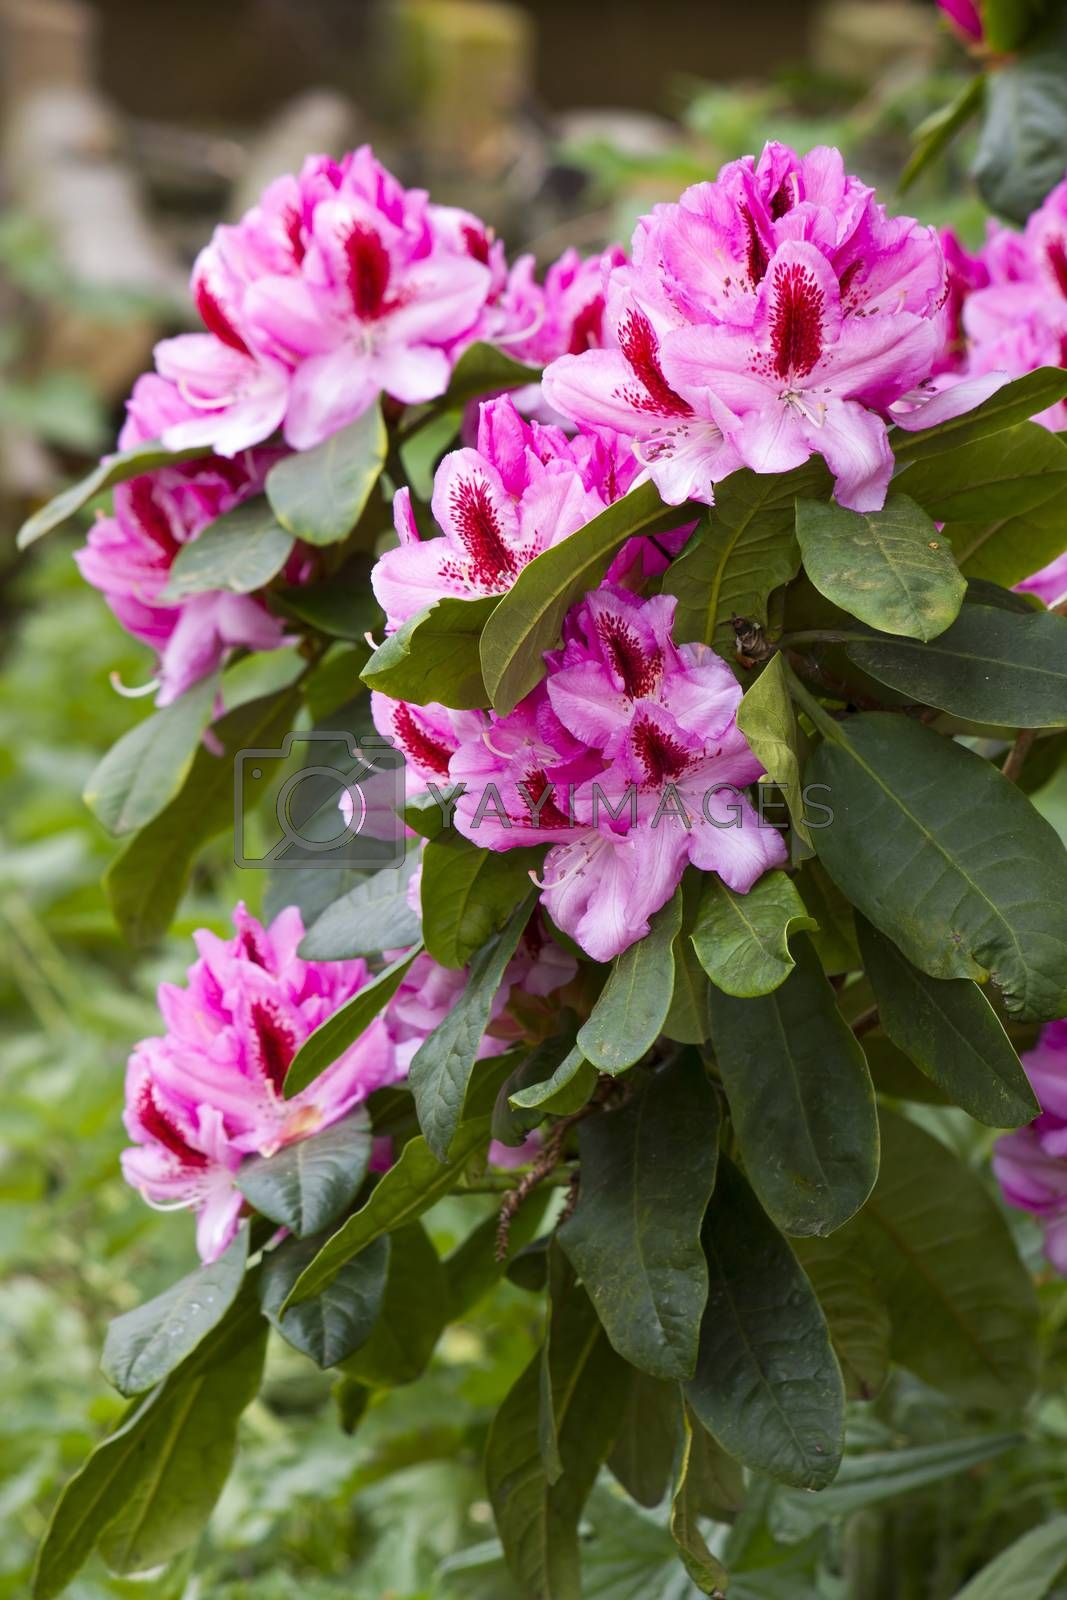 Royalty free image of rhododendron by miradrozdowski